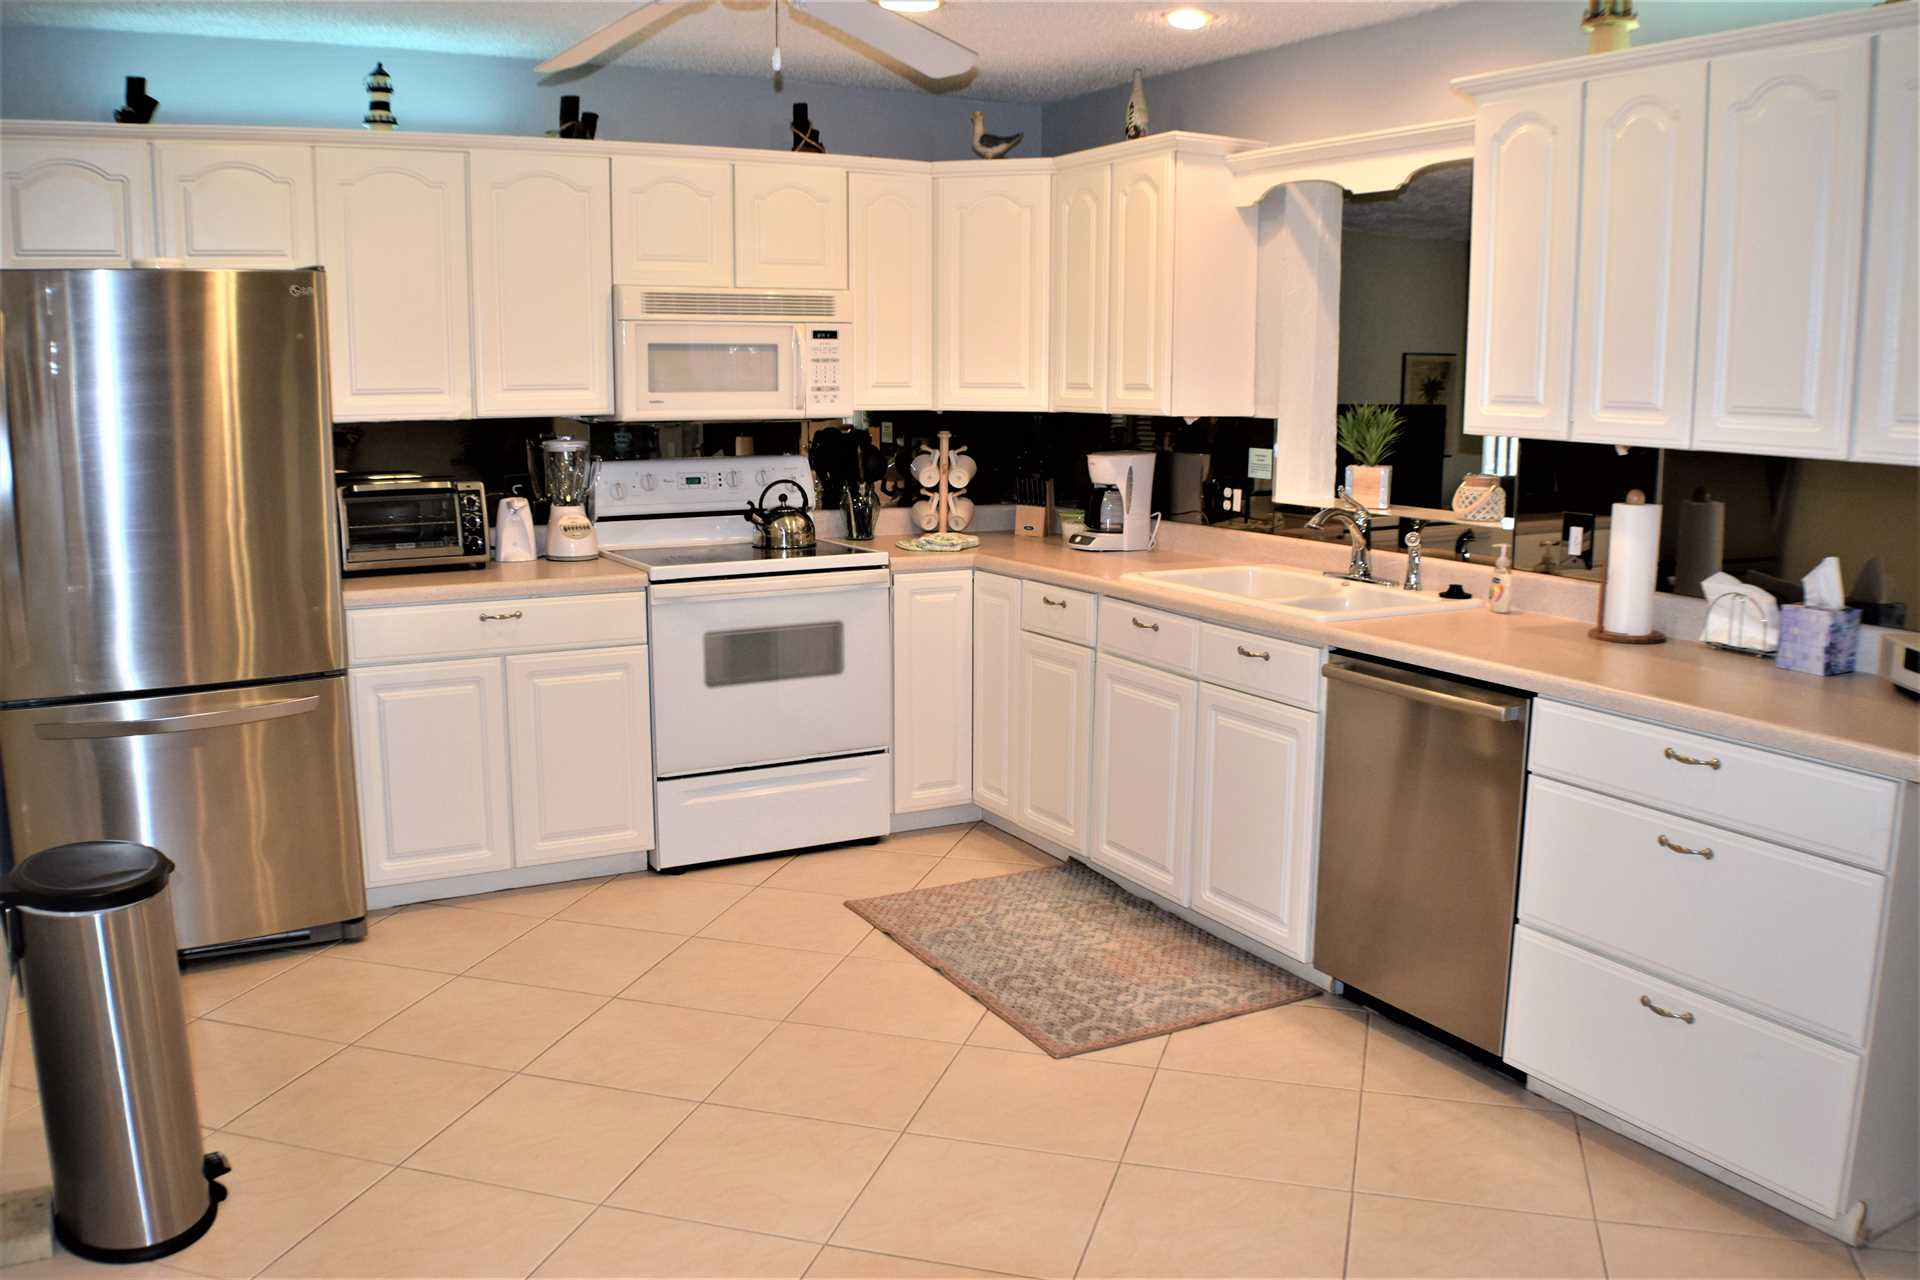 Kitchen is fully equipped with dishware, cookware and every